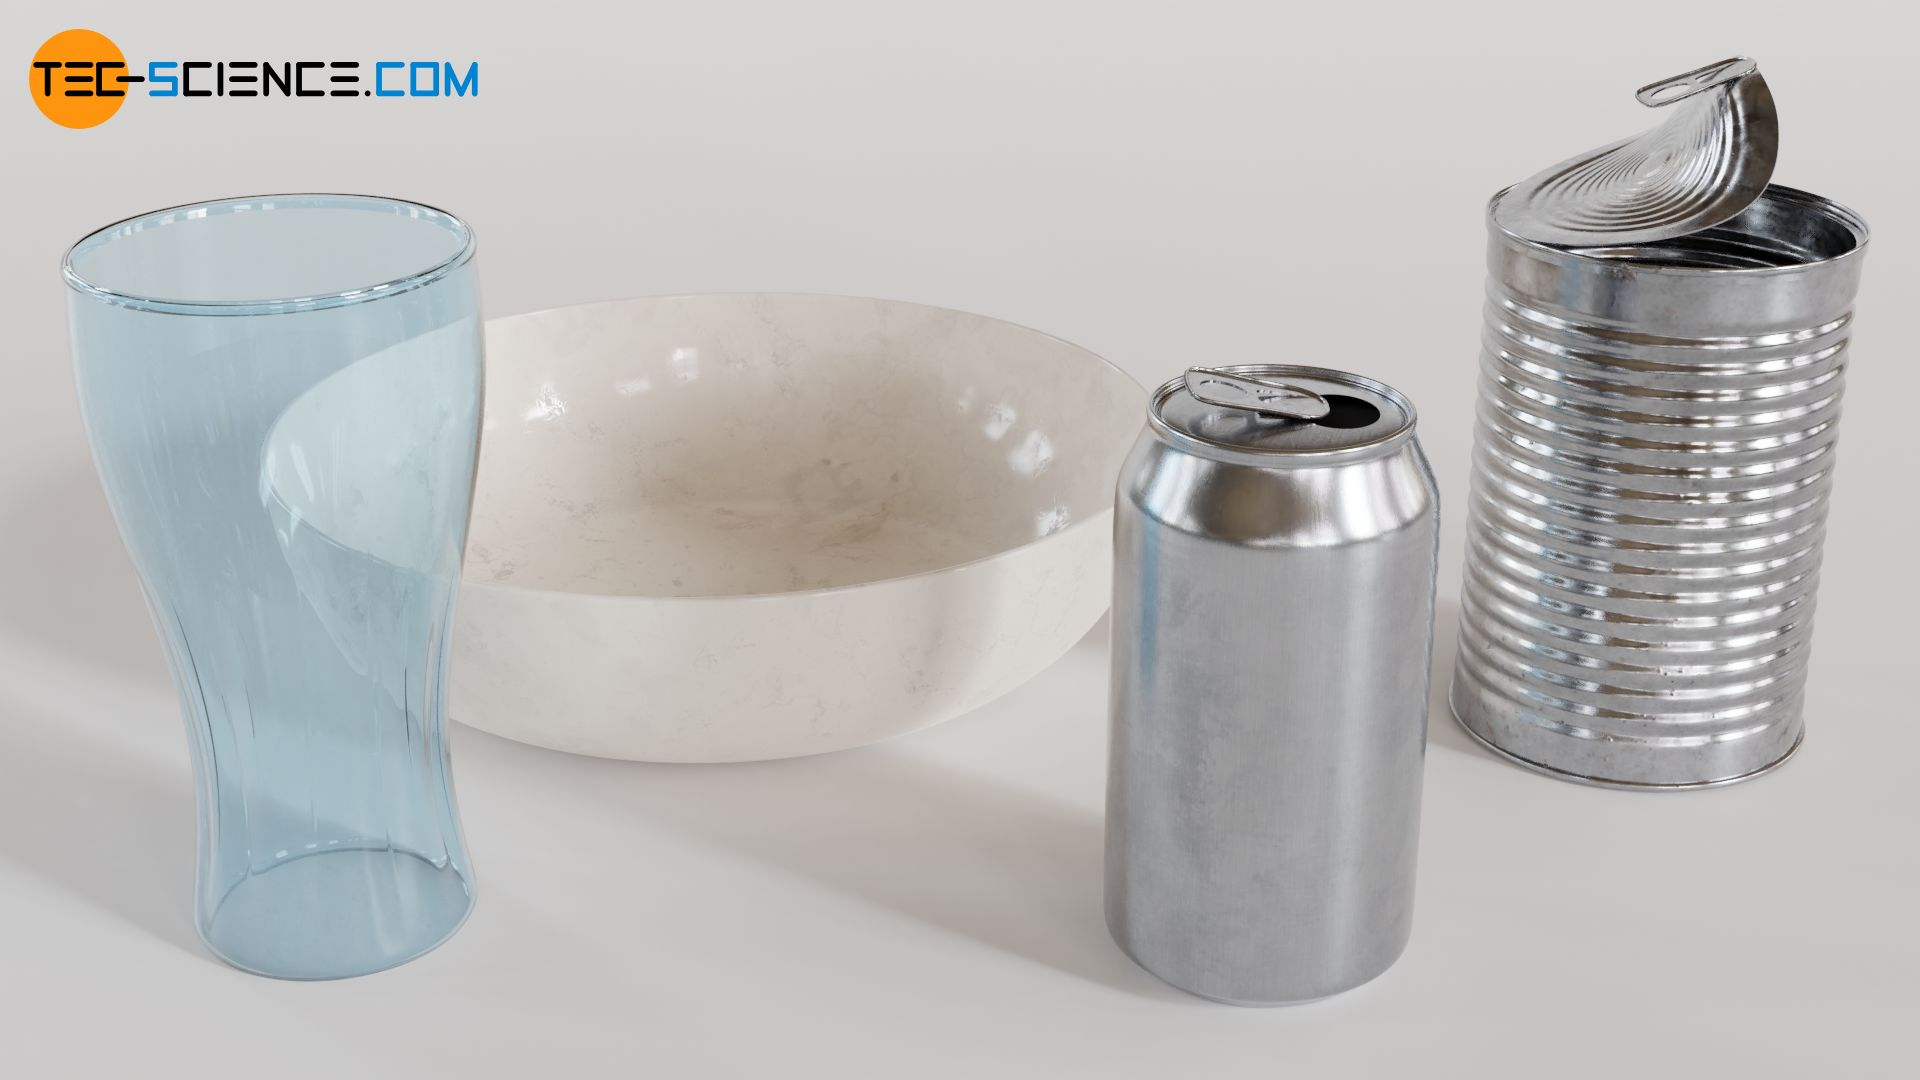 Objects consisting of only one material